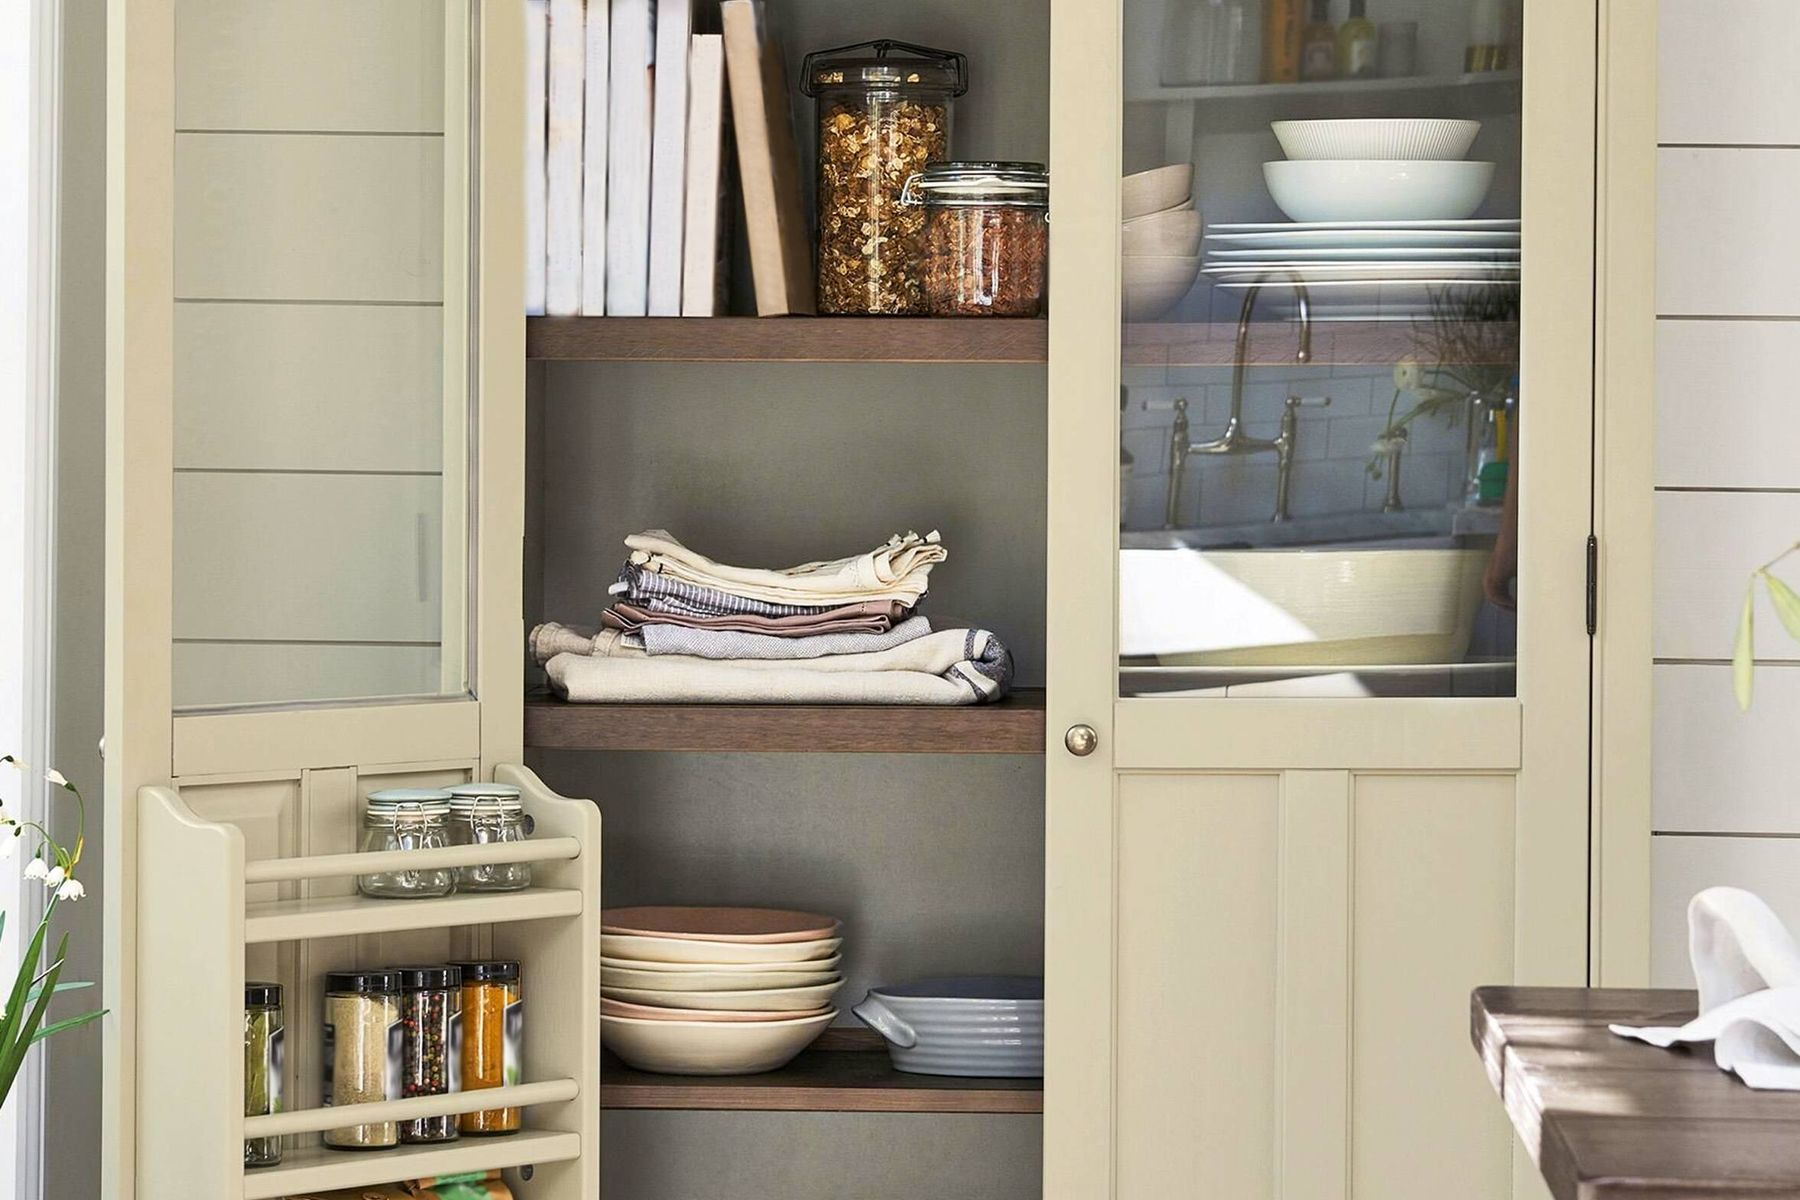 Try These 9 Easy Ways to De-clutter Your Home